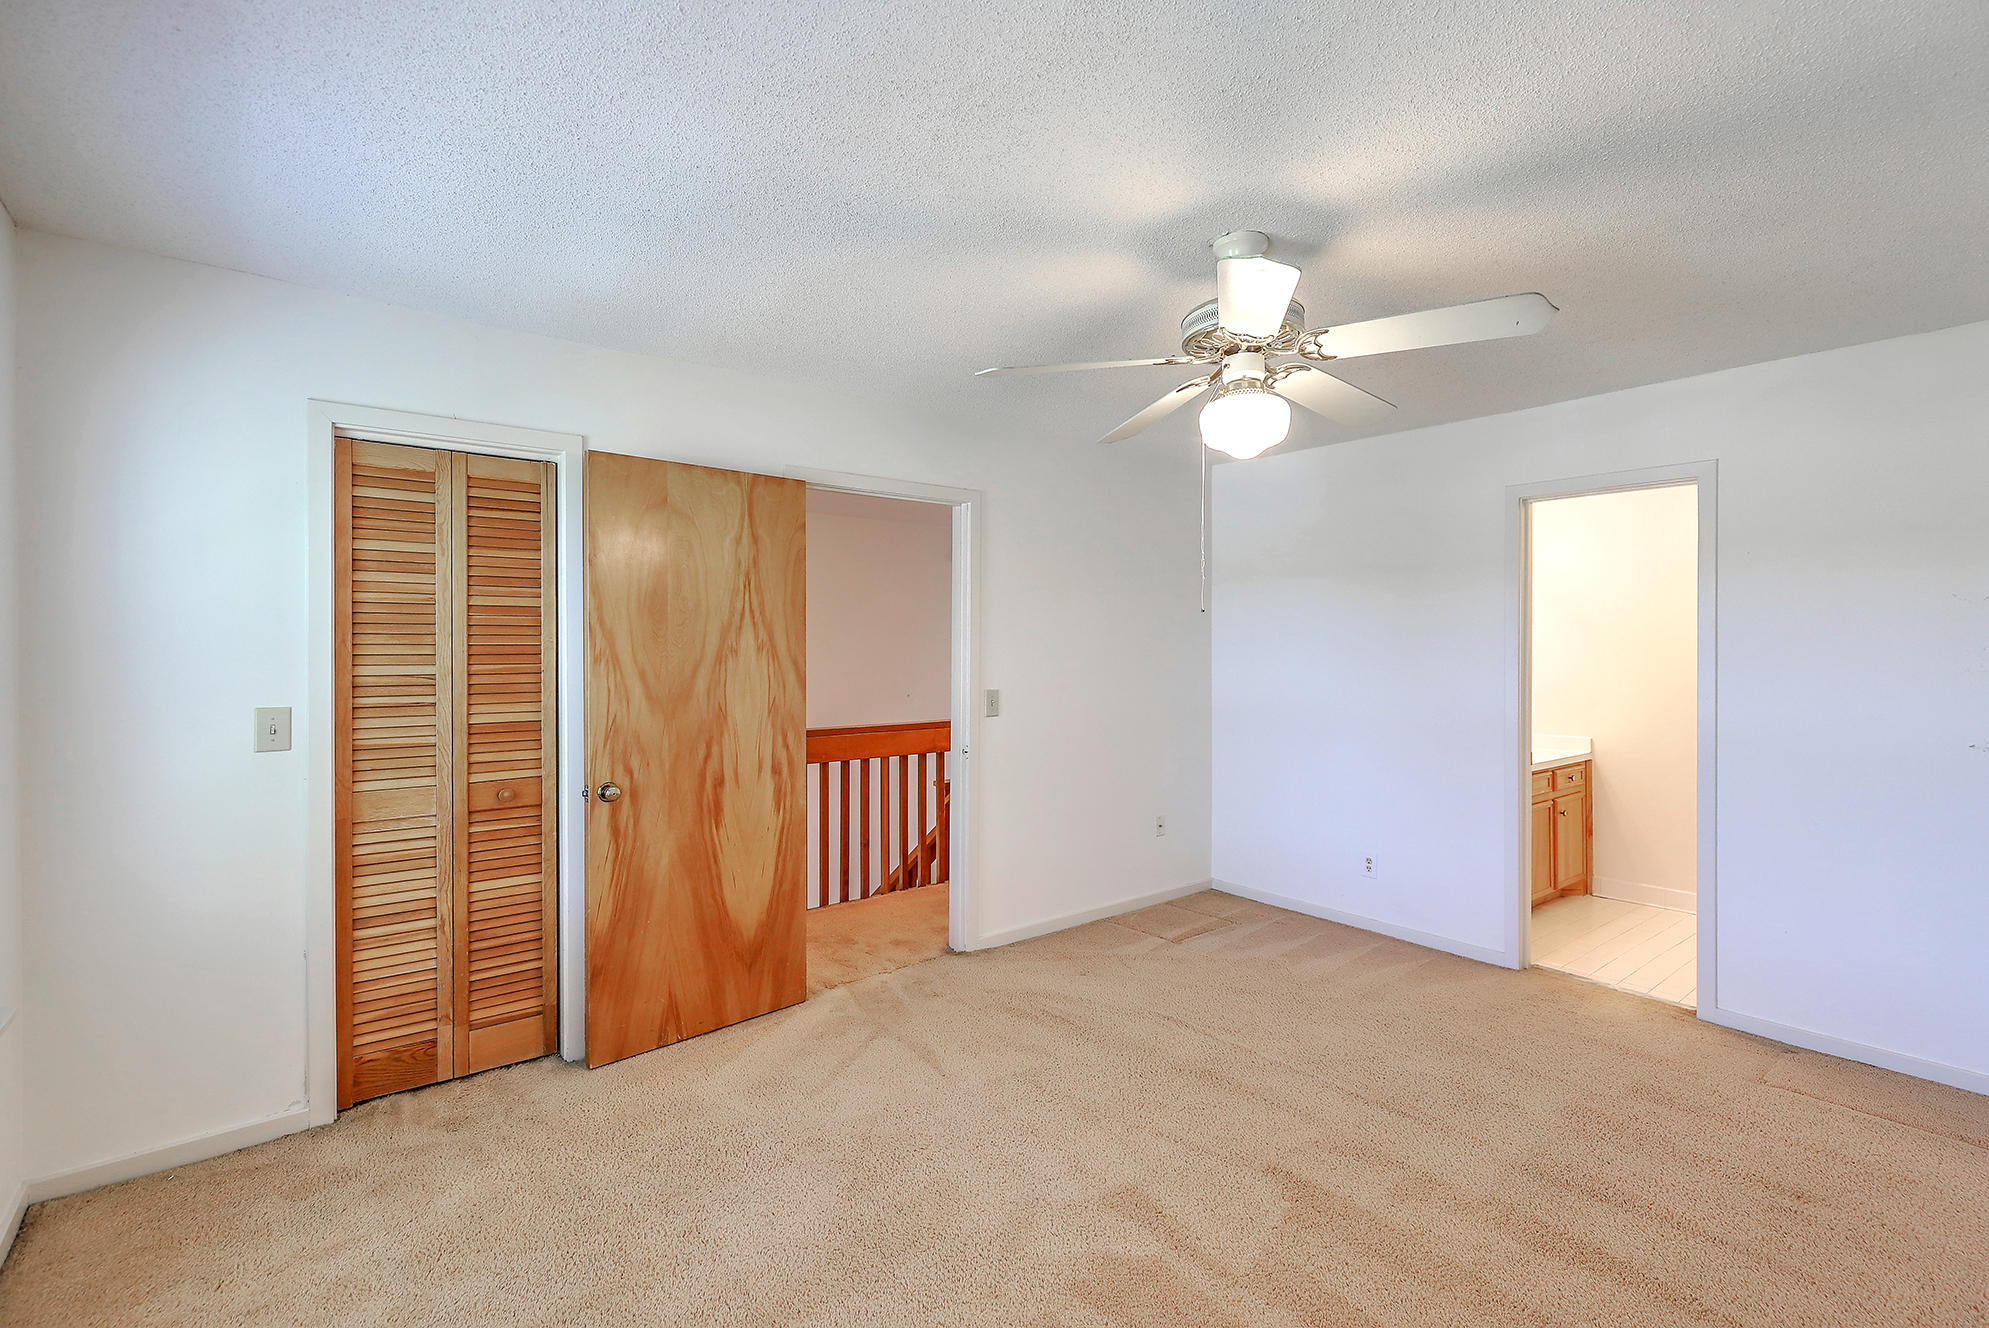 Old Towne Villas Homes For Sale - 2921 Cathedral, Charleston, SC - 20